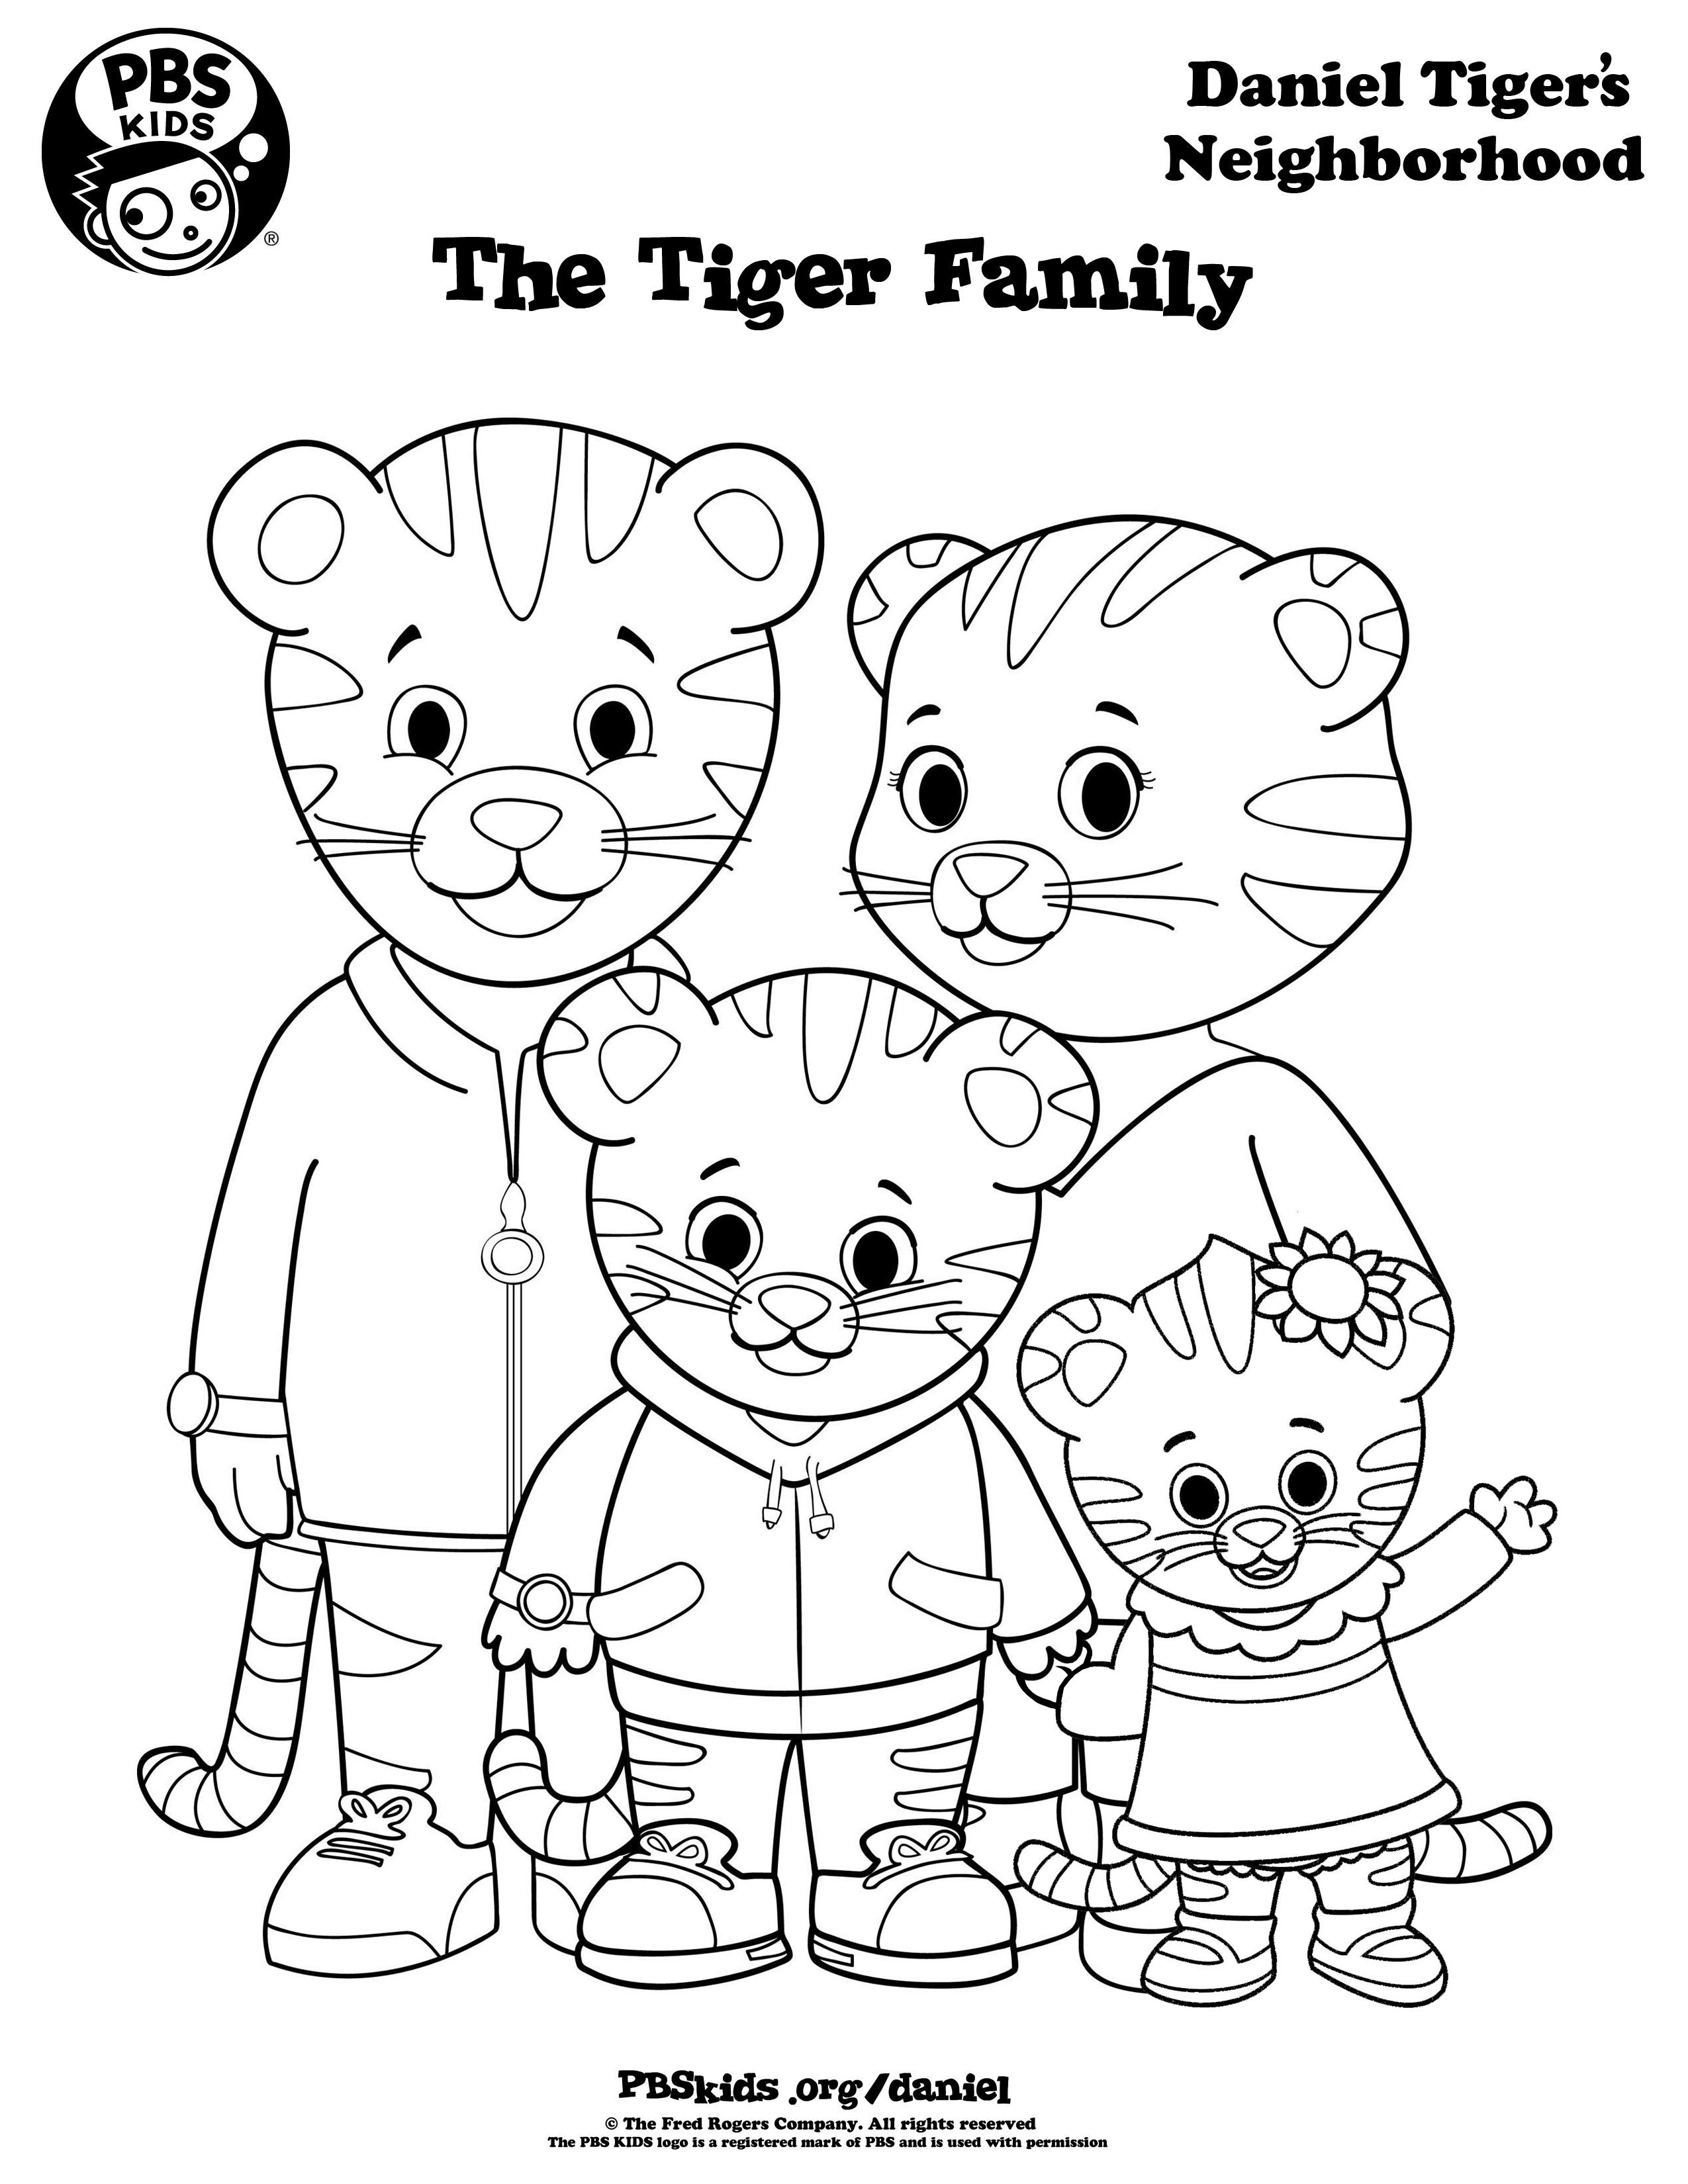 Coloring Pages ~ Daniel Tiger Coloring Pages Image Ideas Baby - Free Printable Daniel Tiger Coloring Pages